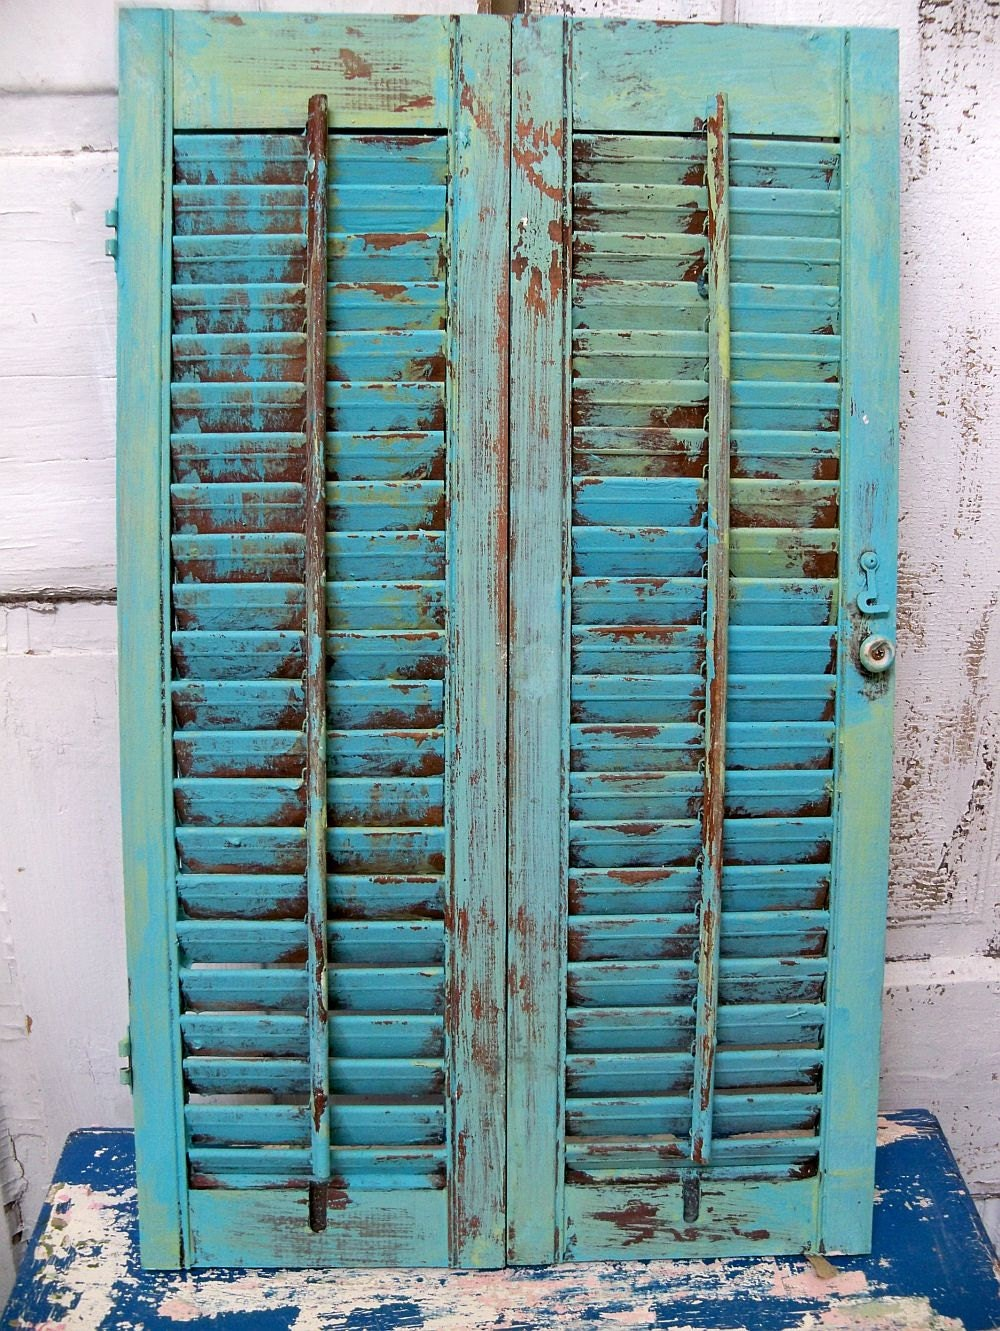 10ideas about Vintage Shutters on Pinterest Shutters, Old